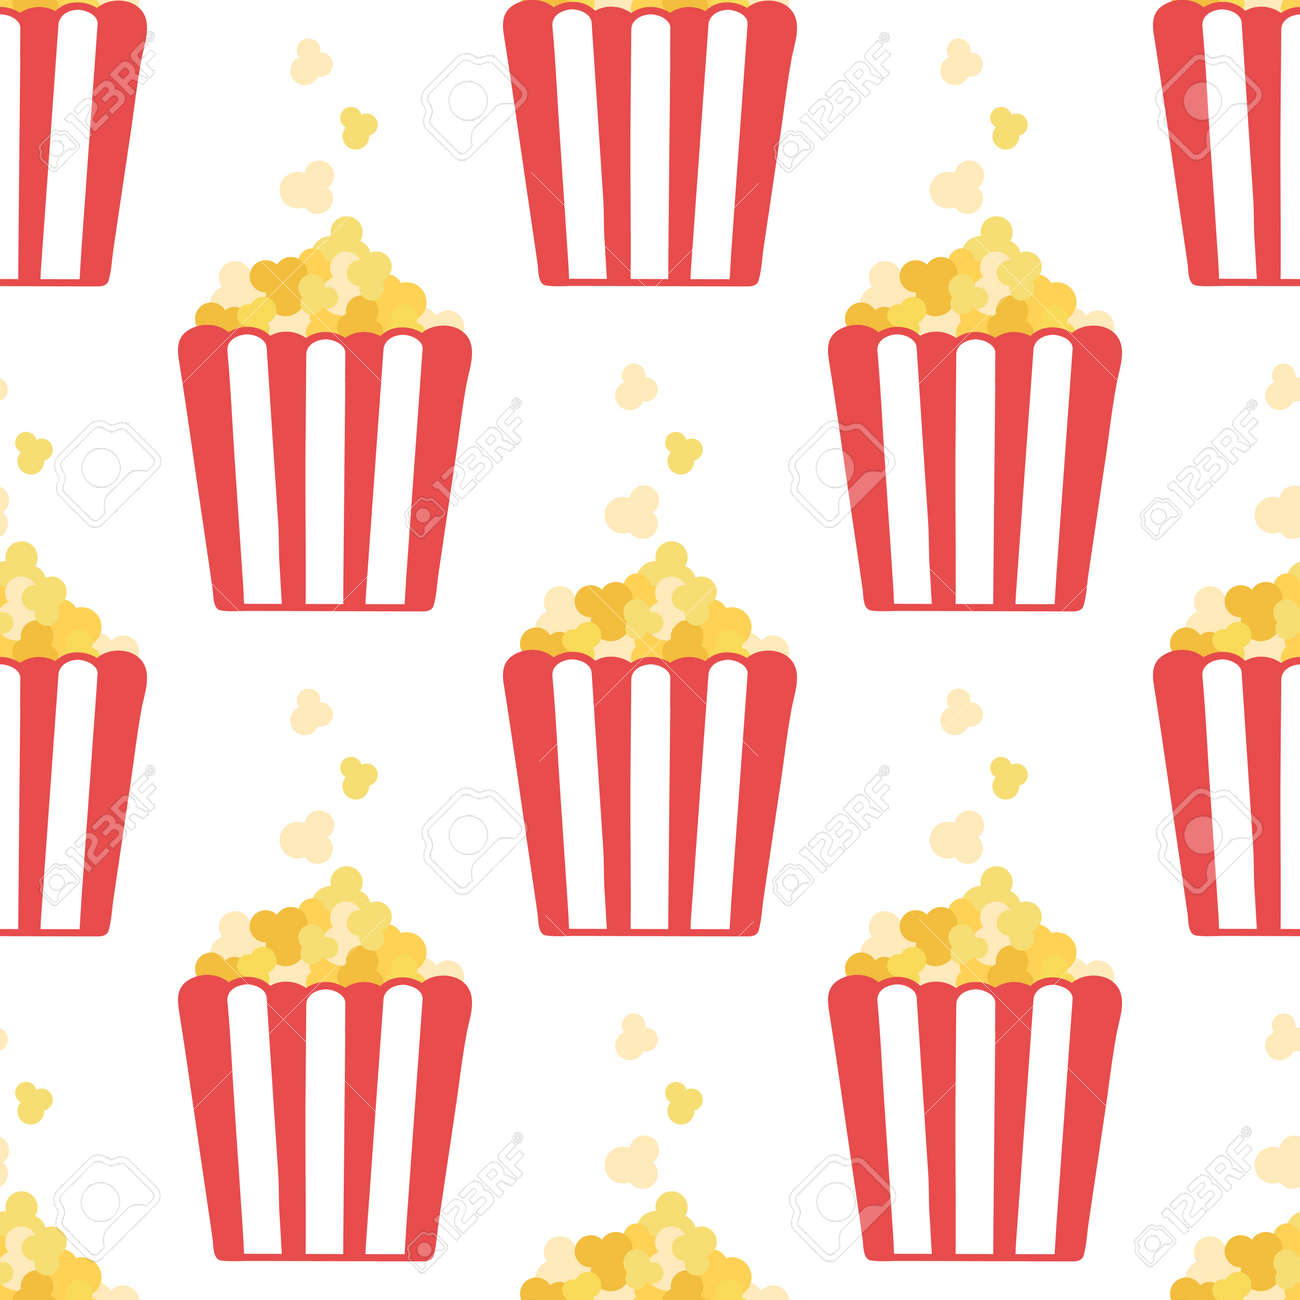 Popcorn. Seamless vector pattern in flat style isolated on white background - 145027567